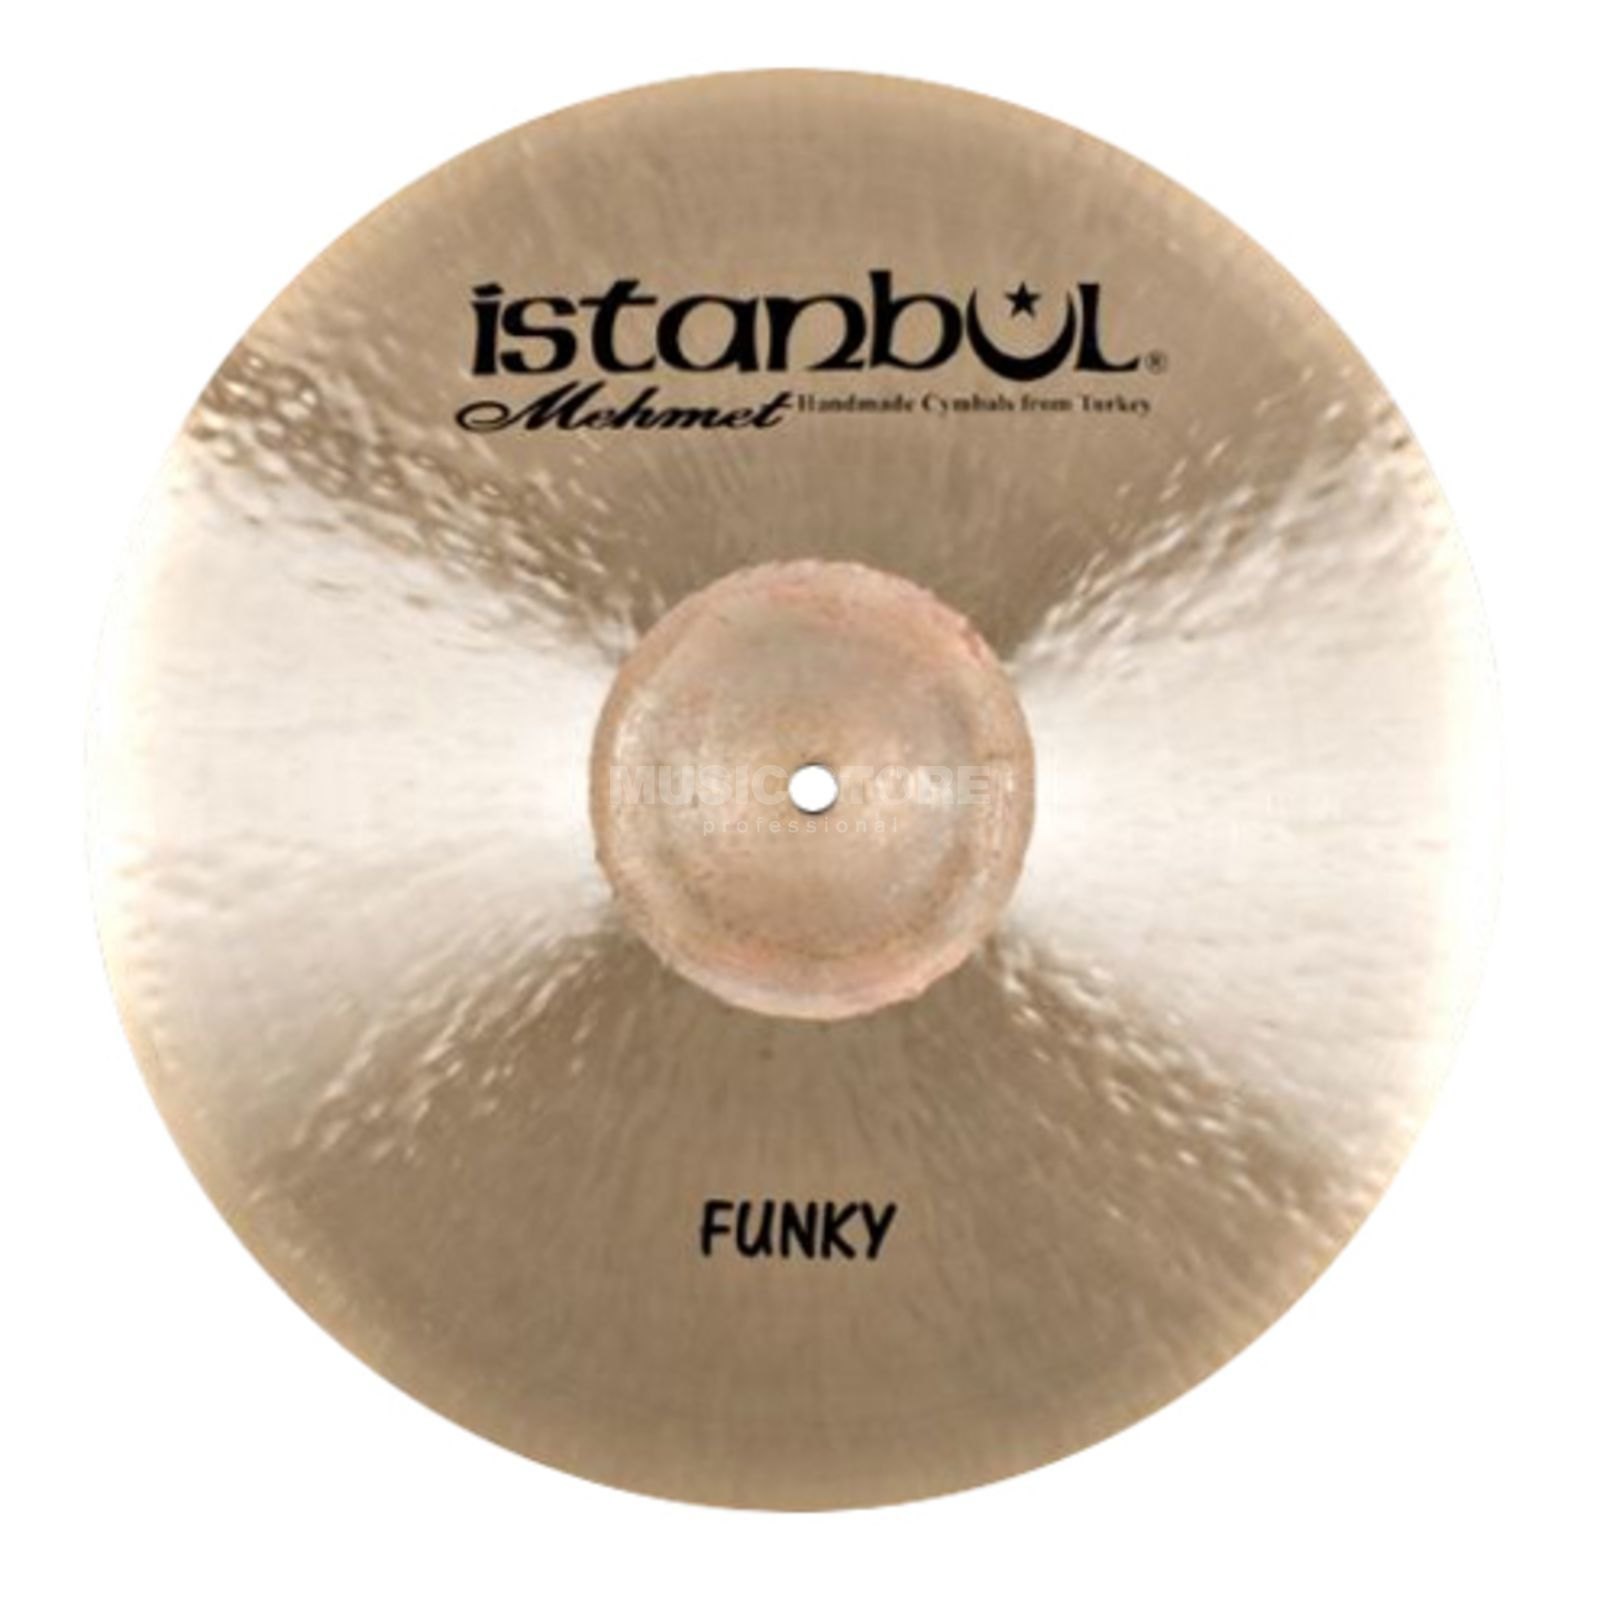 "Istanbul Funky Crash 18"", FR-C18 Productafbeelding"